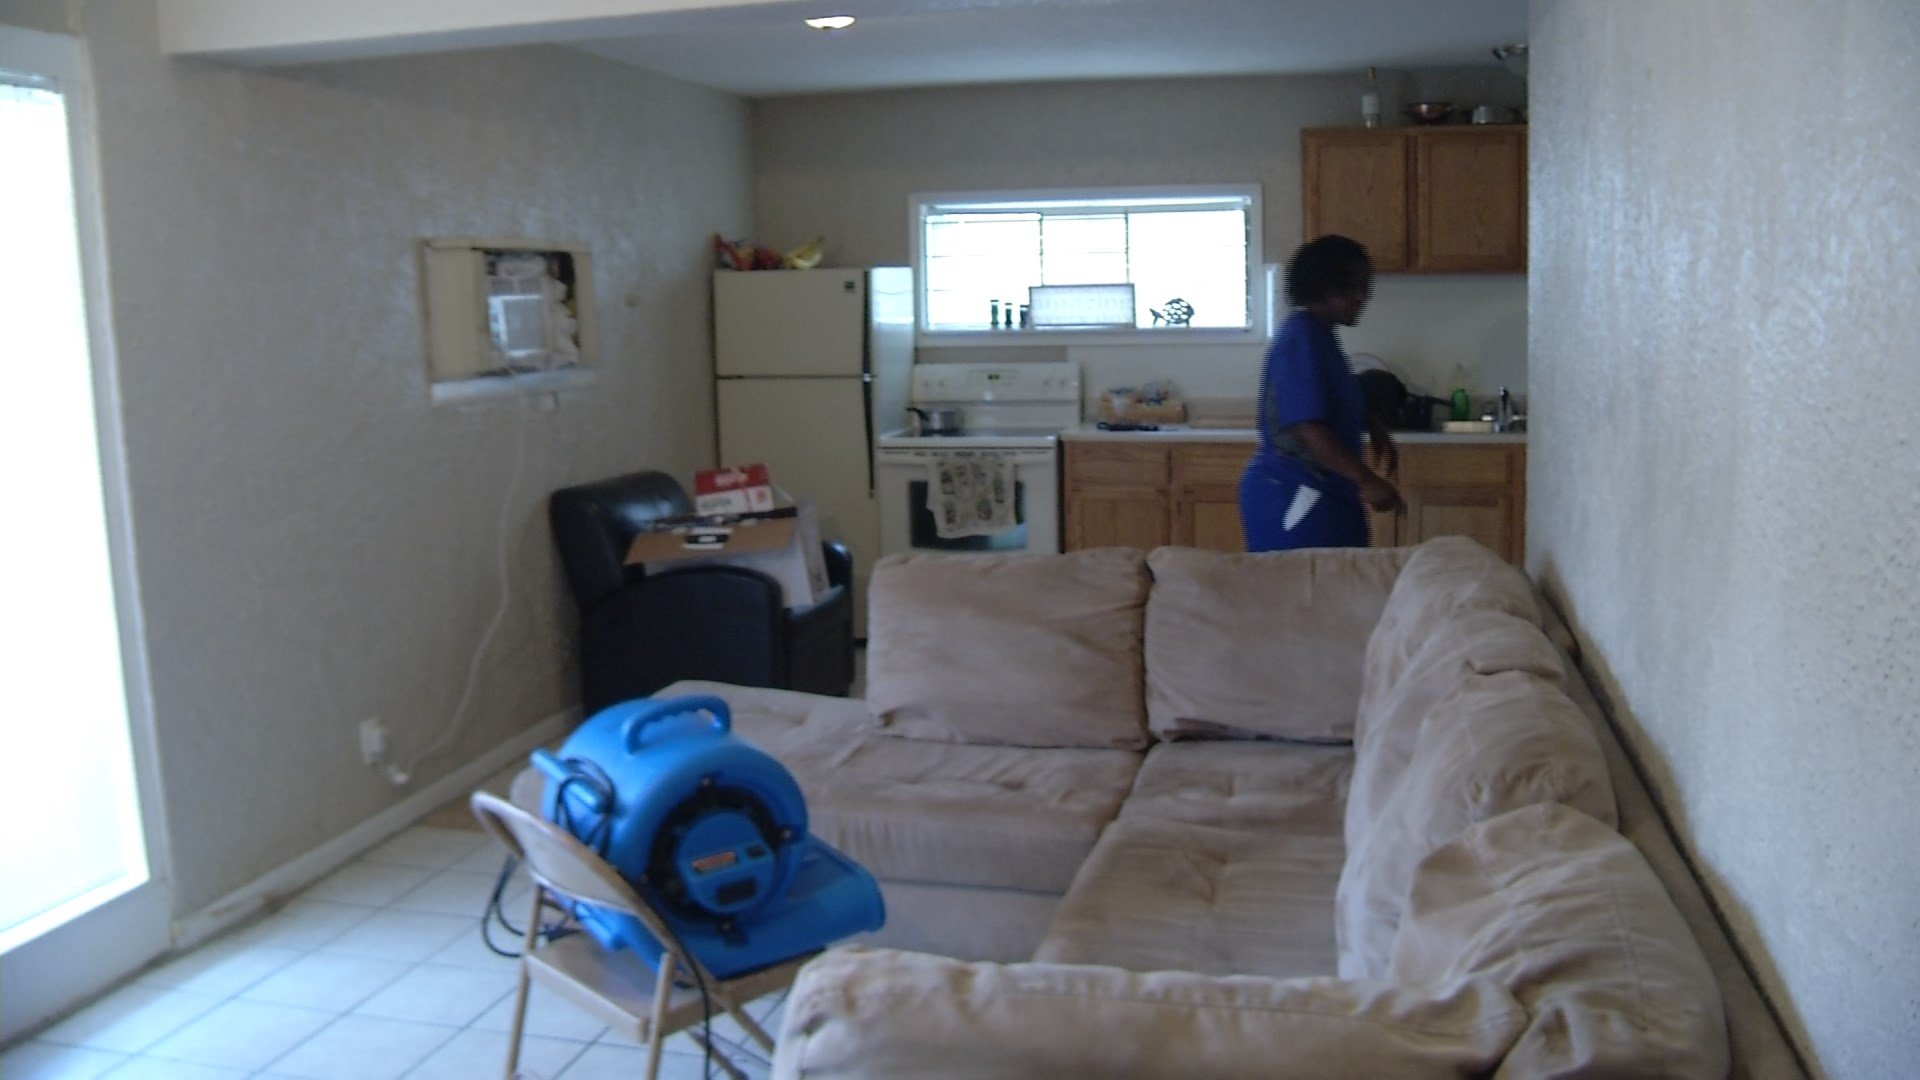 Stacey Carr had to dry vac her apartment due to damage from Friday night's flooding. (Grady Reid/KCTV5)